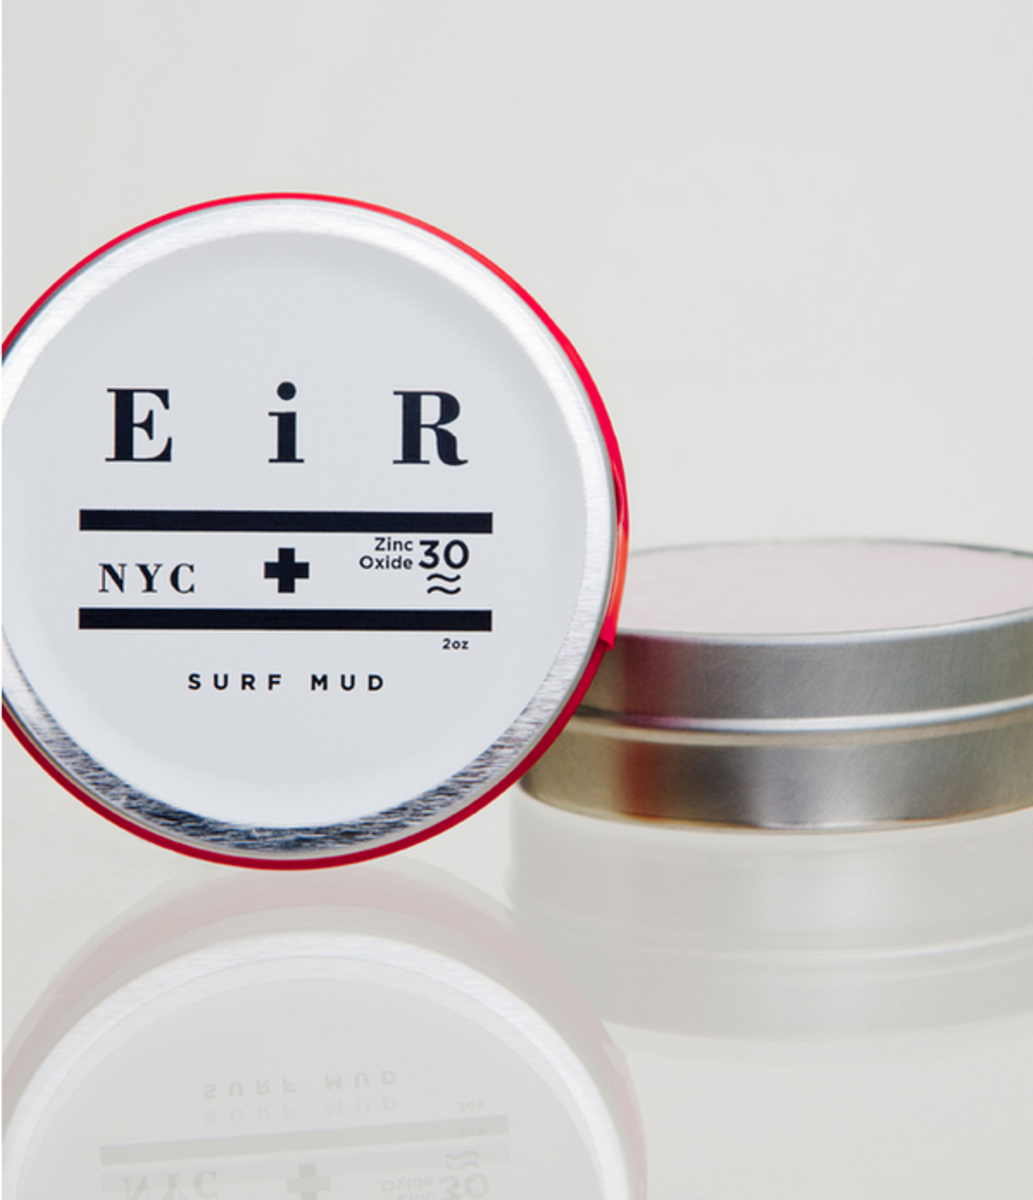 EiR NYC Surf Mud Body Oil